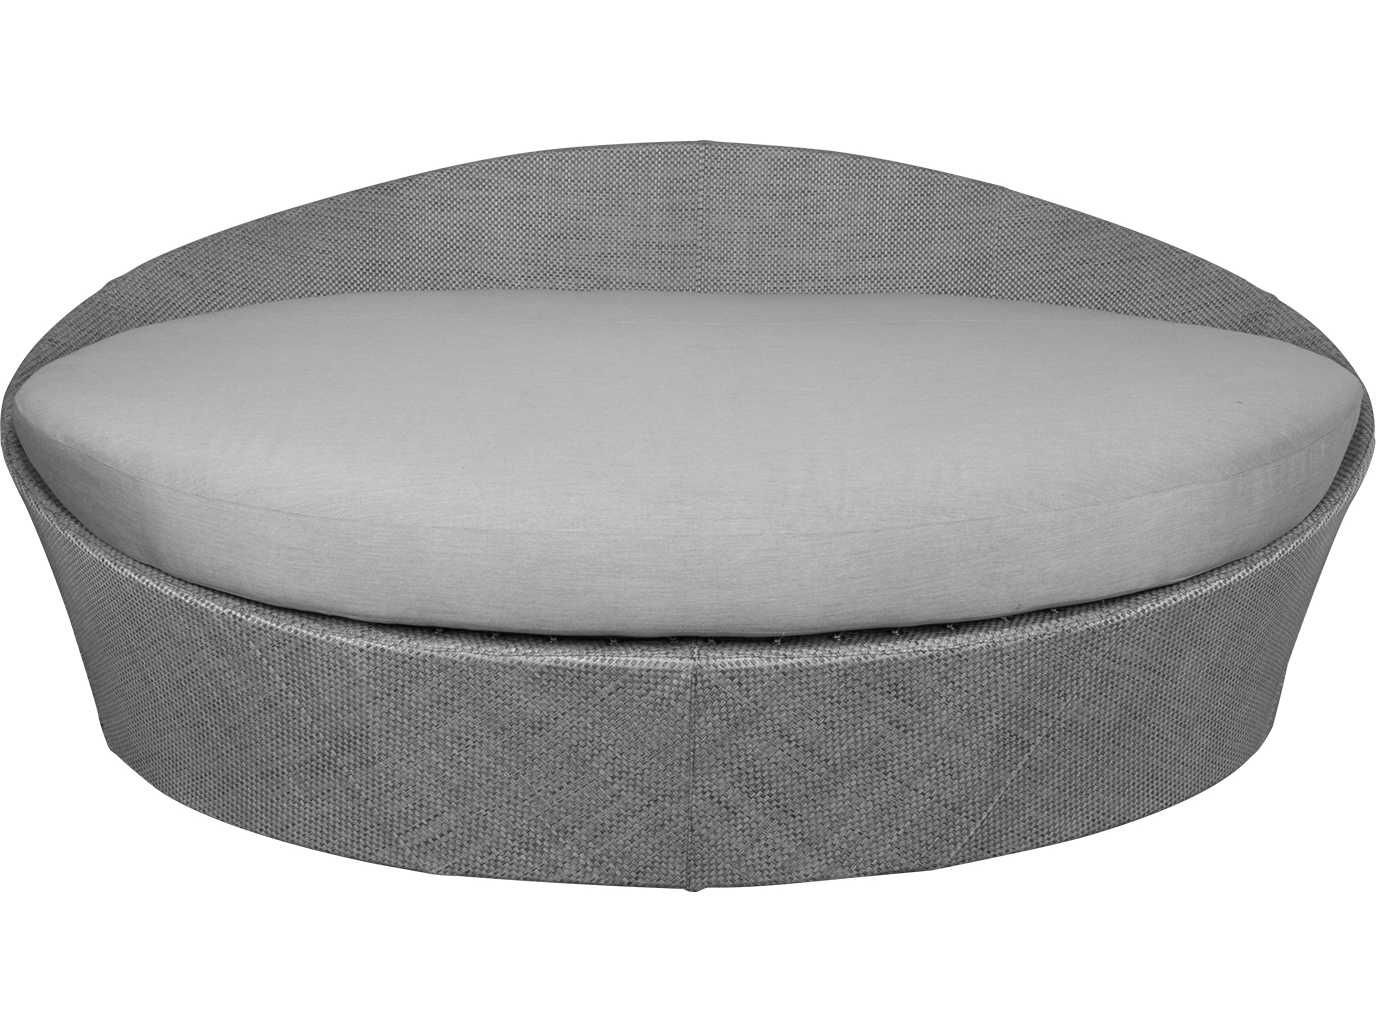 Perfect Large Round Cushions For Outdoor Furniture   Cool Furniture Ideas Check  More At Http:/